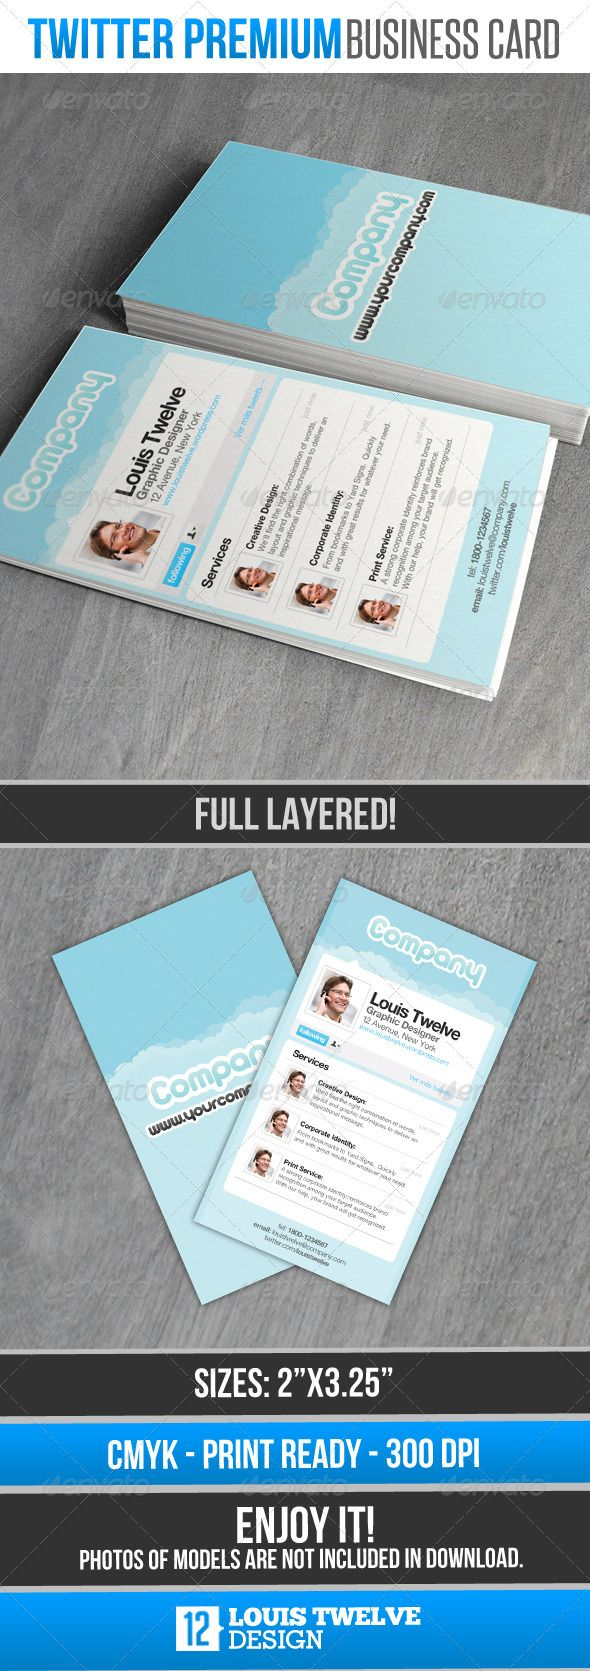 Best 25 premium business cards ideas on pinterest wood branding twitter premium card business magicingreecefo Image collections